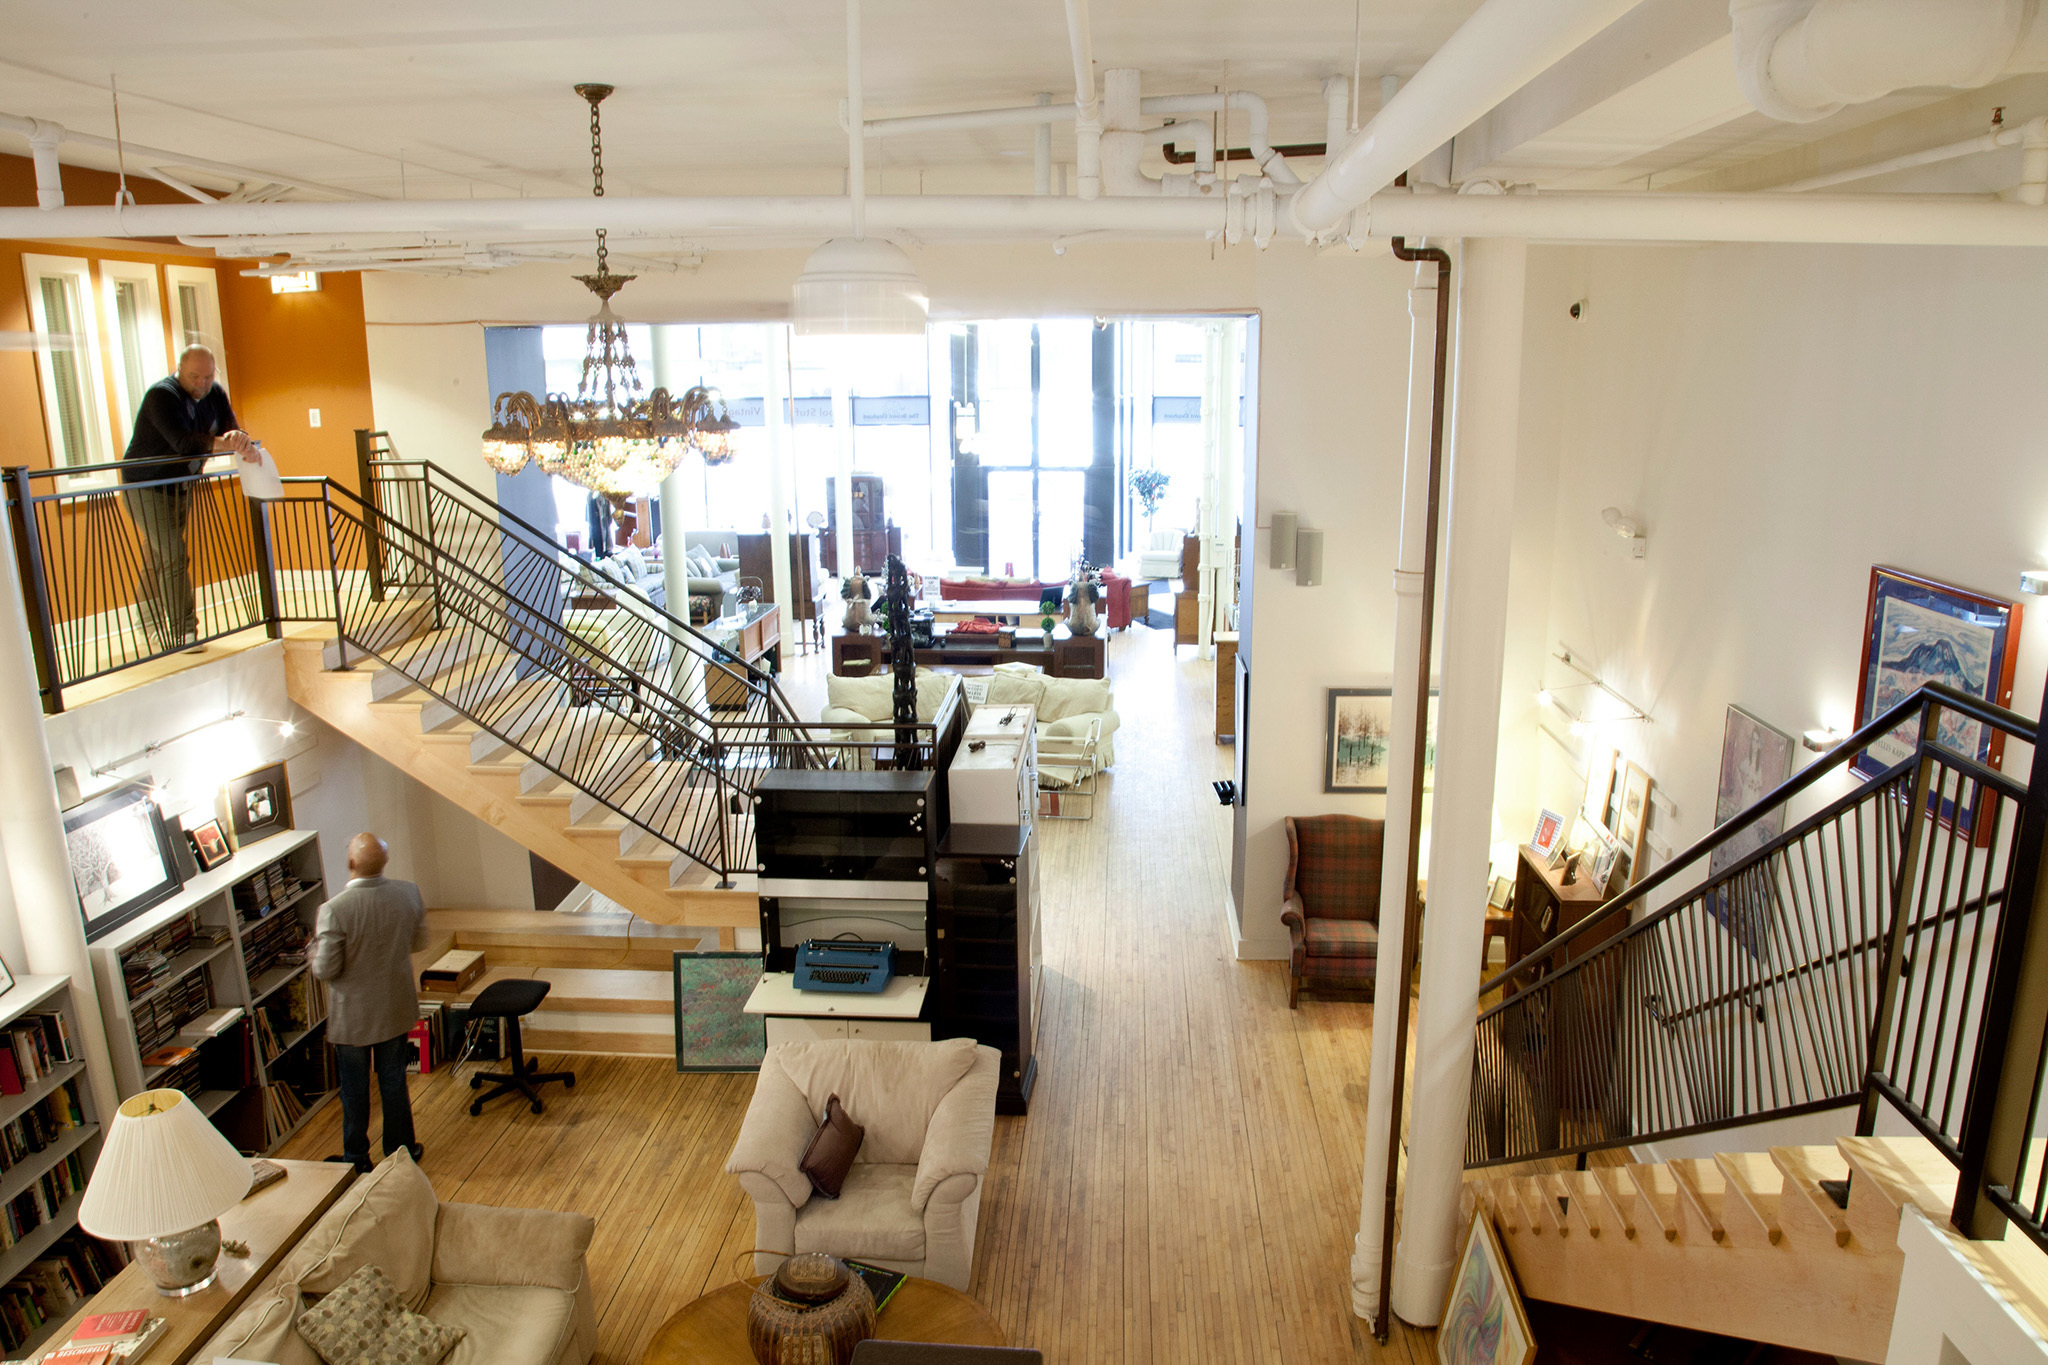 The best thrift stores in Chicago